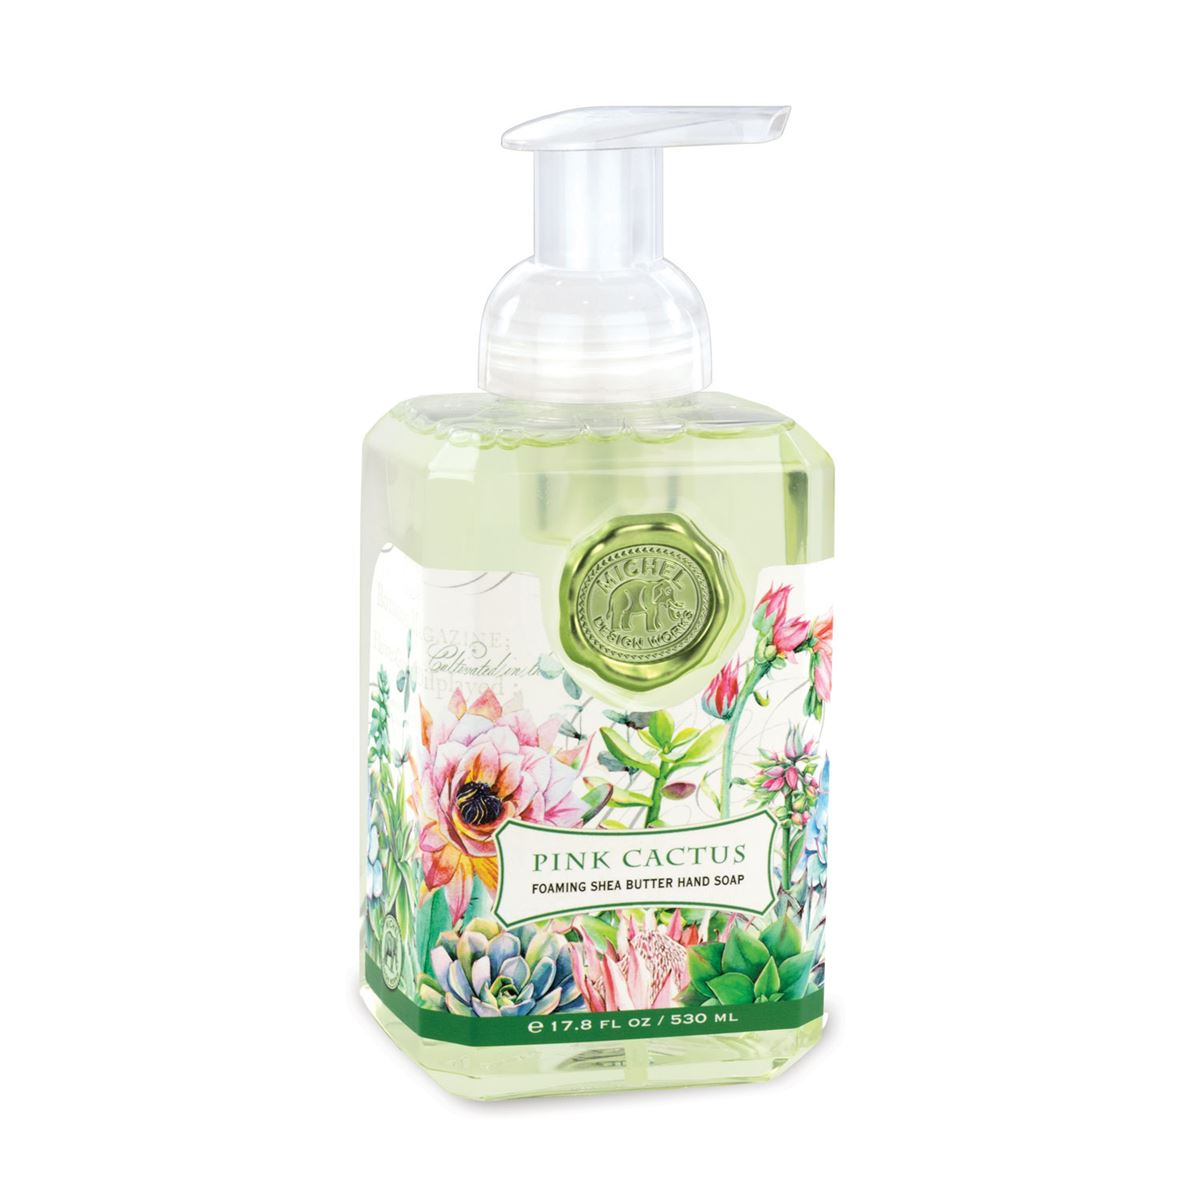 Foaming Hand Soap By Michel Design Works Pink Cactus